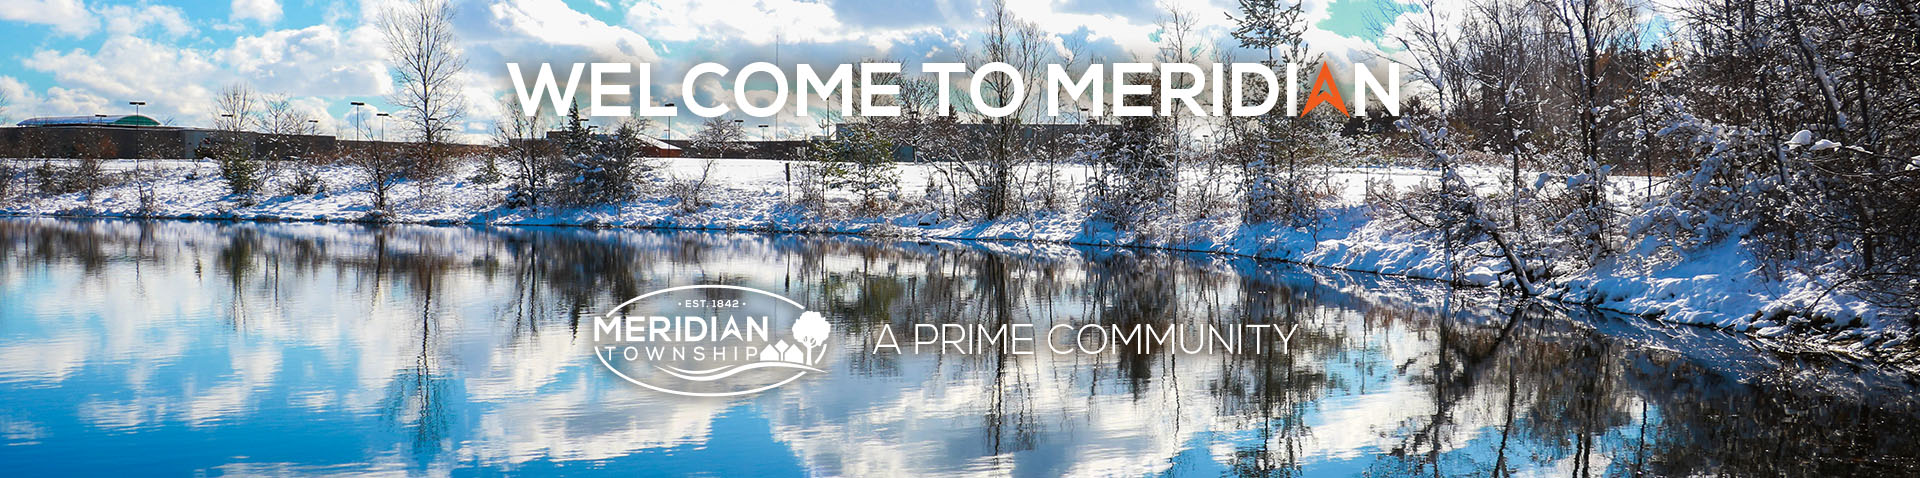 Welcome to Meridian A Prime Community